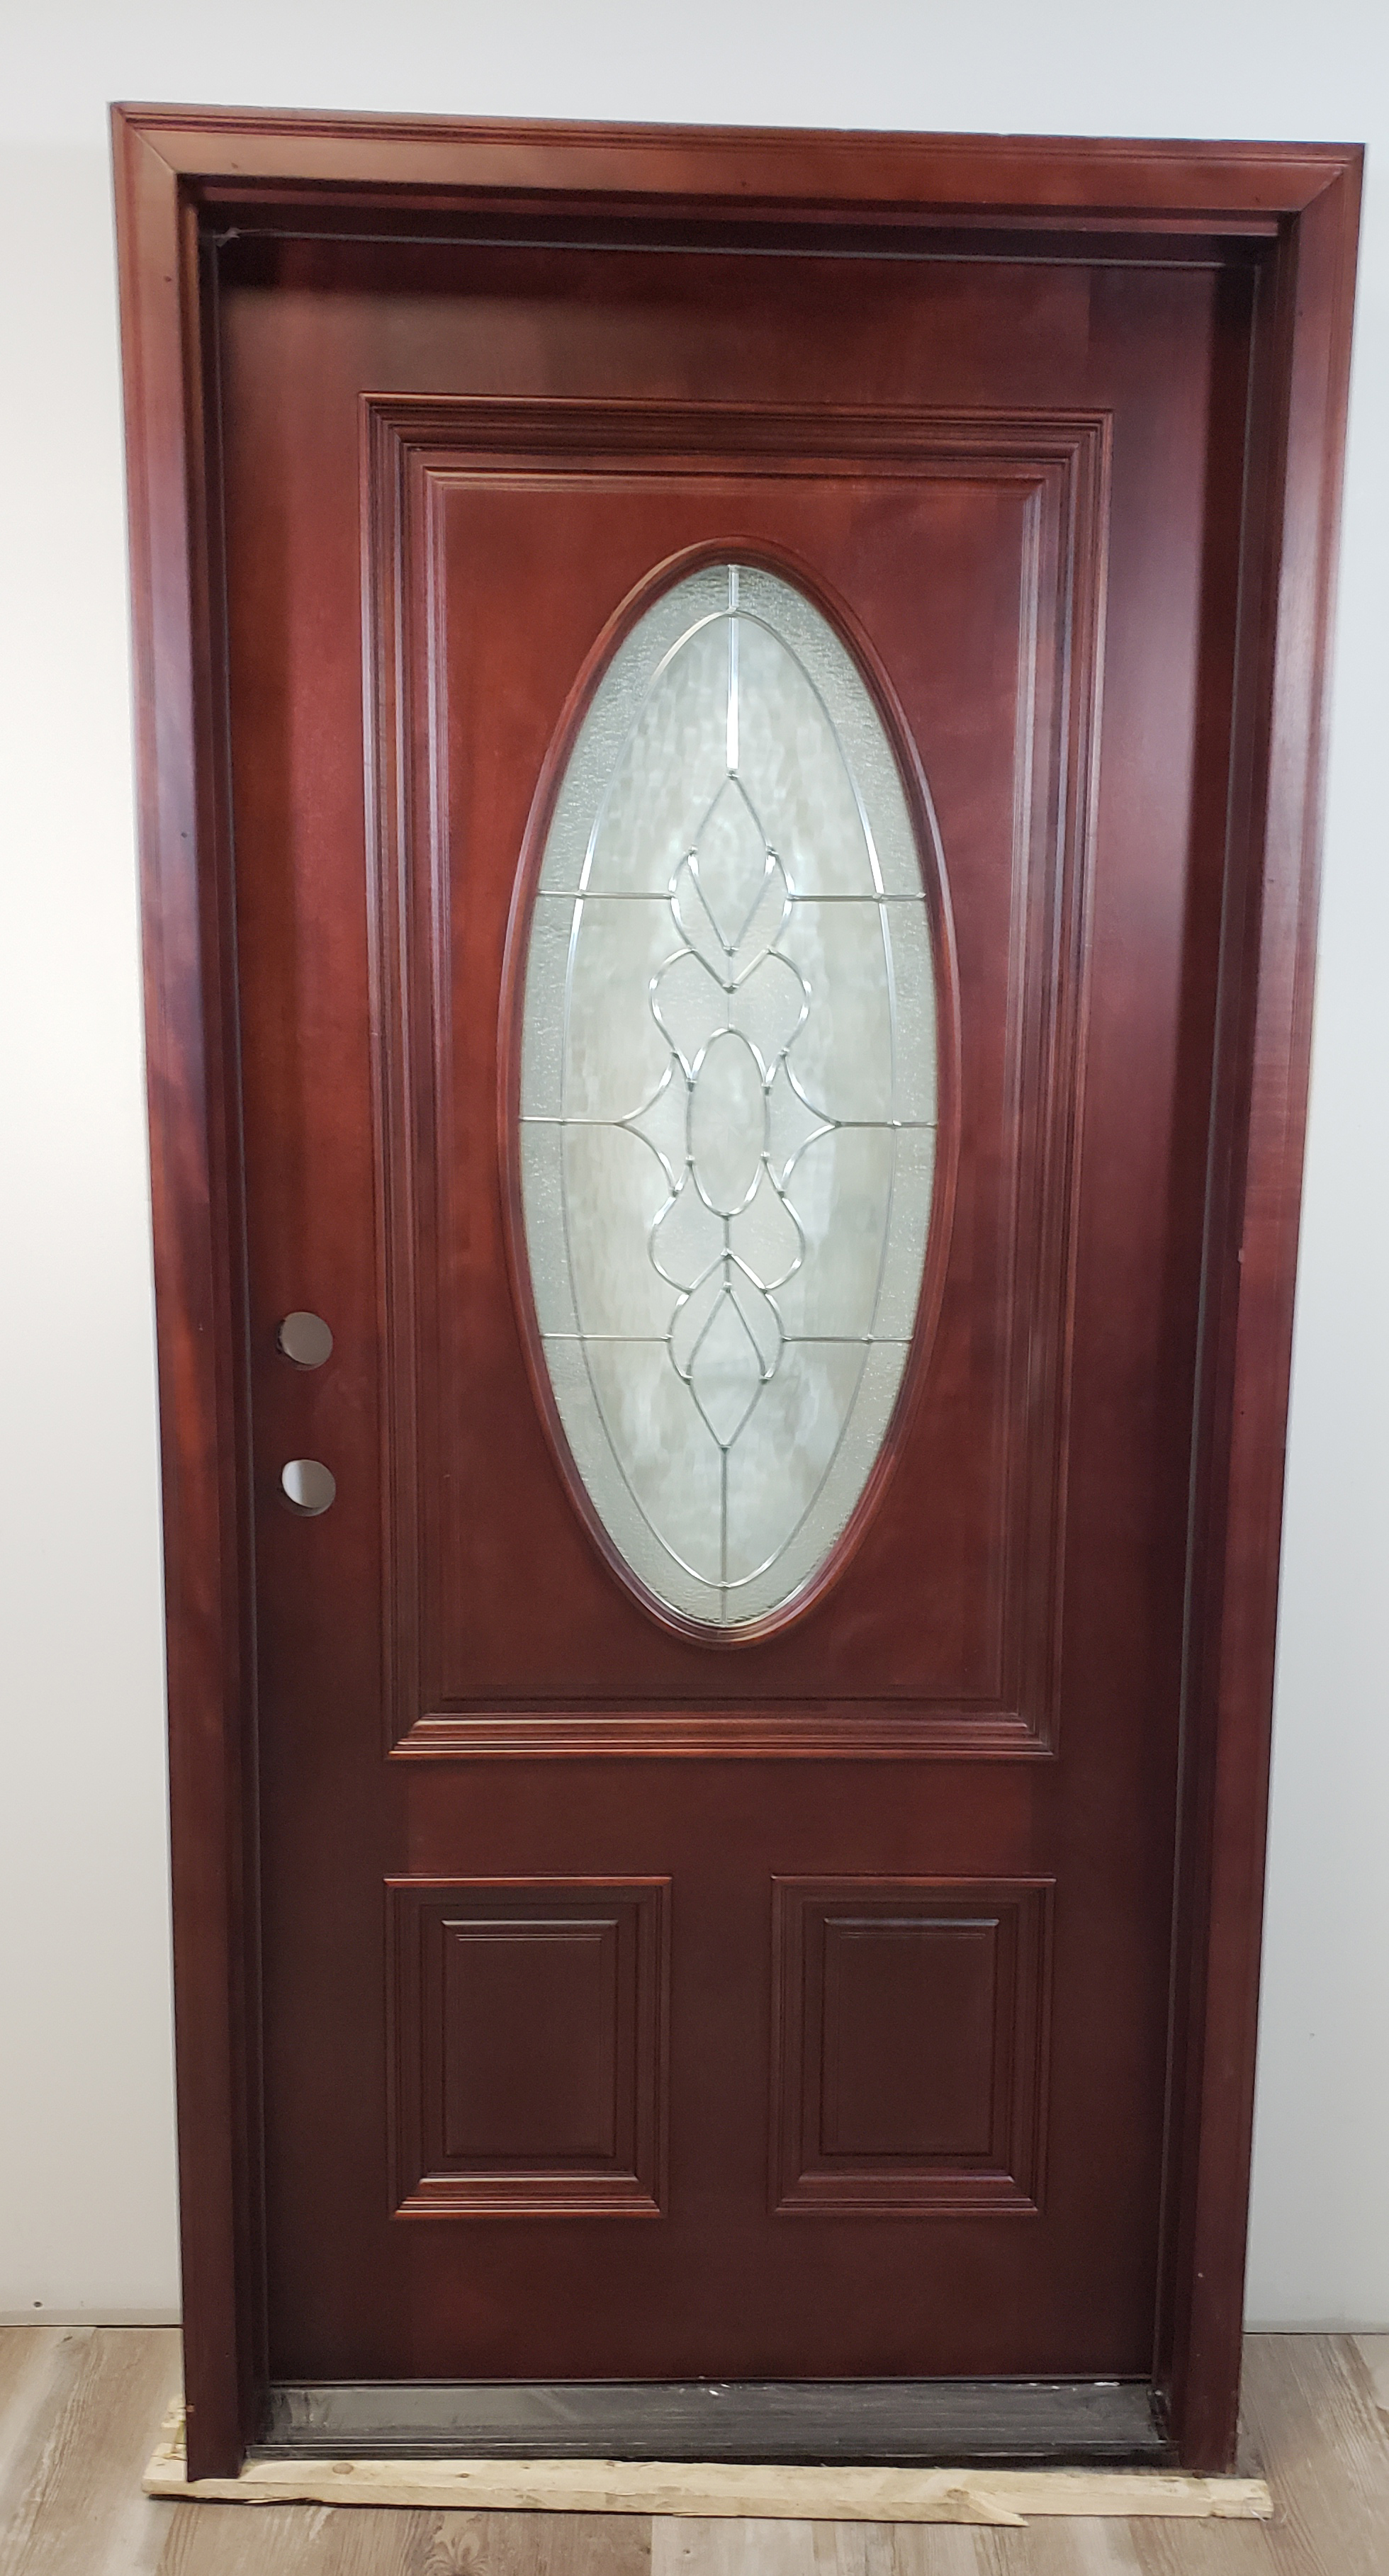 wood-pacific-entry-glass-oval-exterior-door-mahogany-finiswood-h